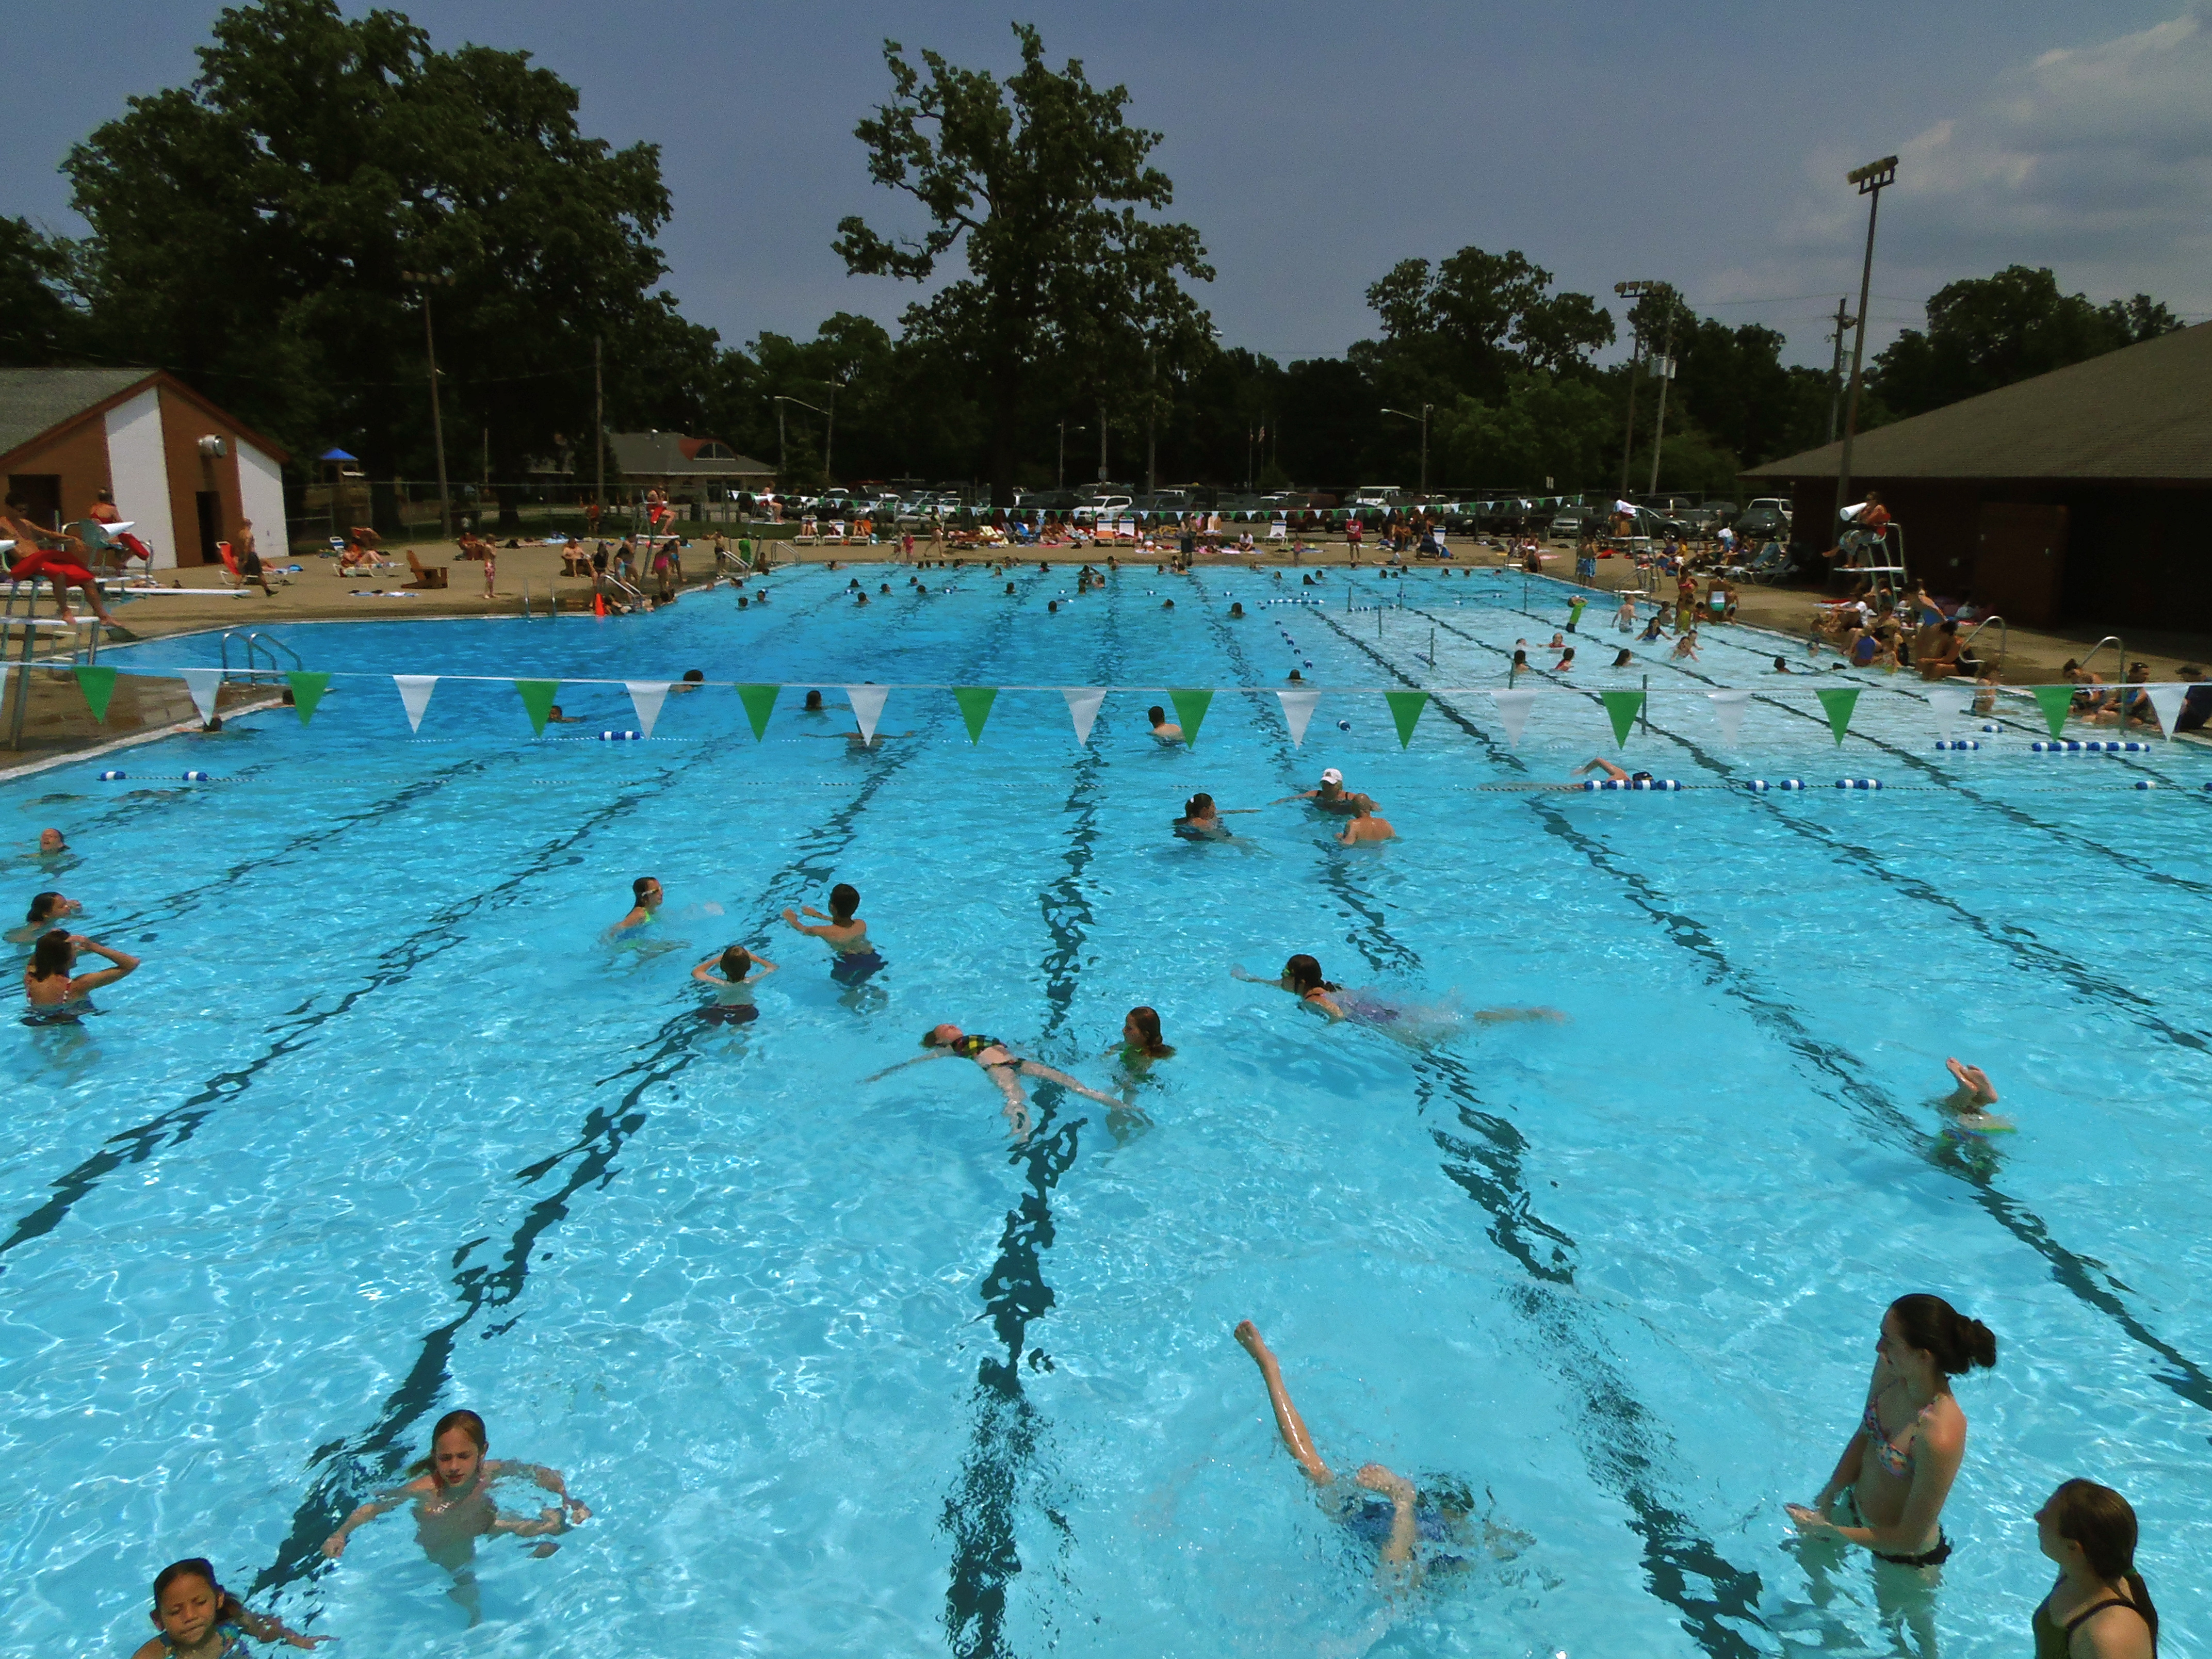 Summer fun at Foster Pool